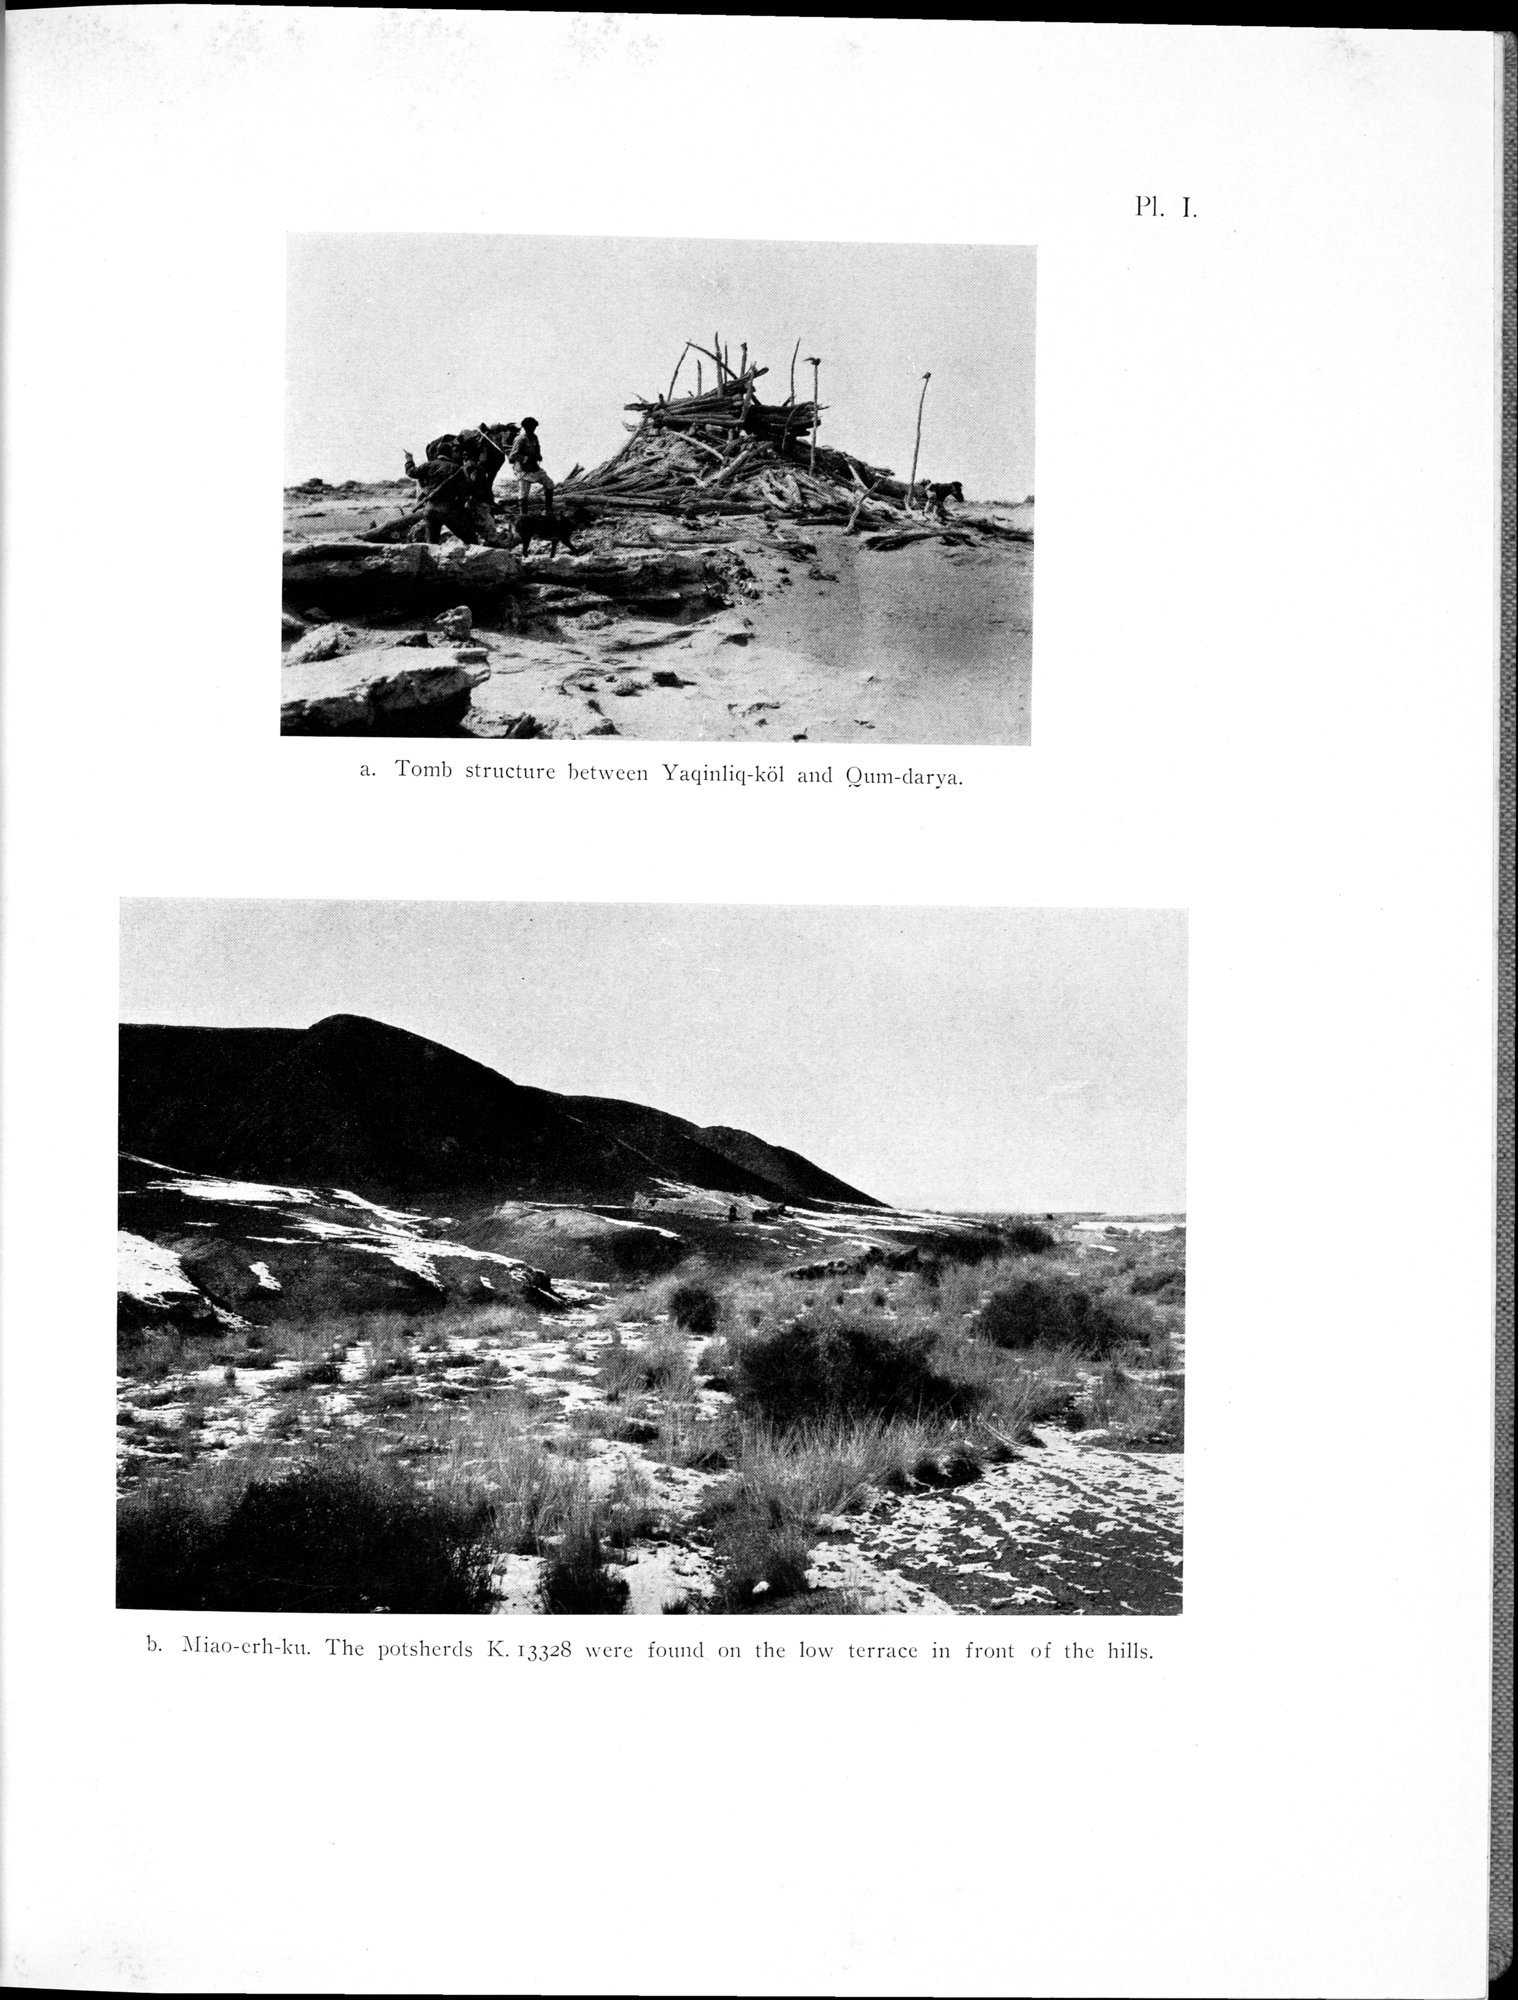 Archaeological Researches in Sinkiang : vol.1 / Page 39 (Grayscale High Resolution Image)